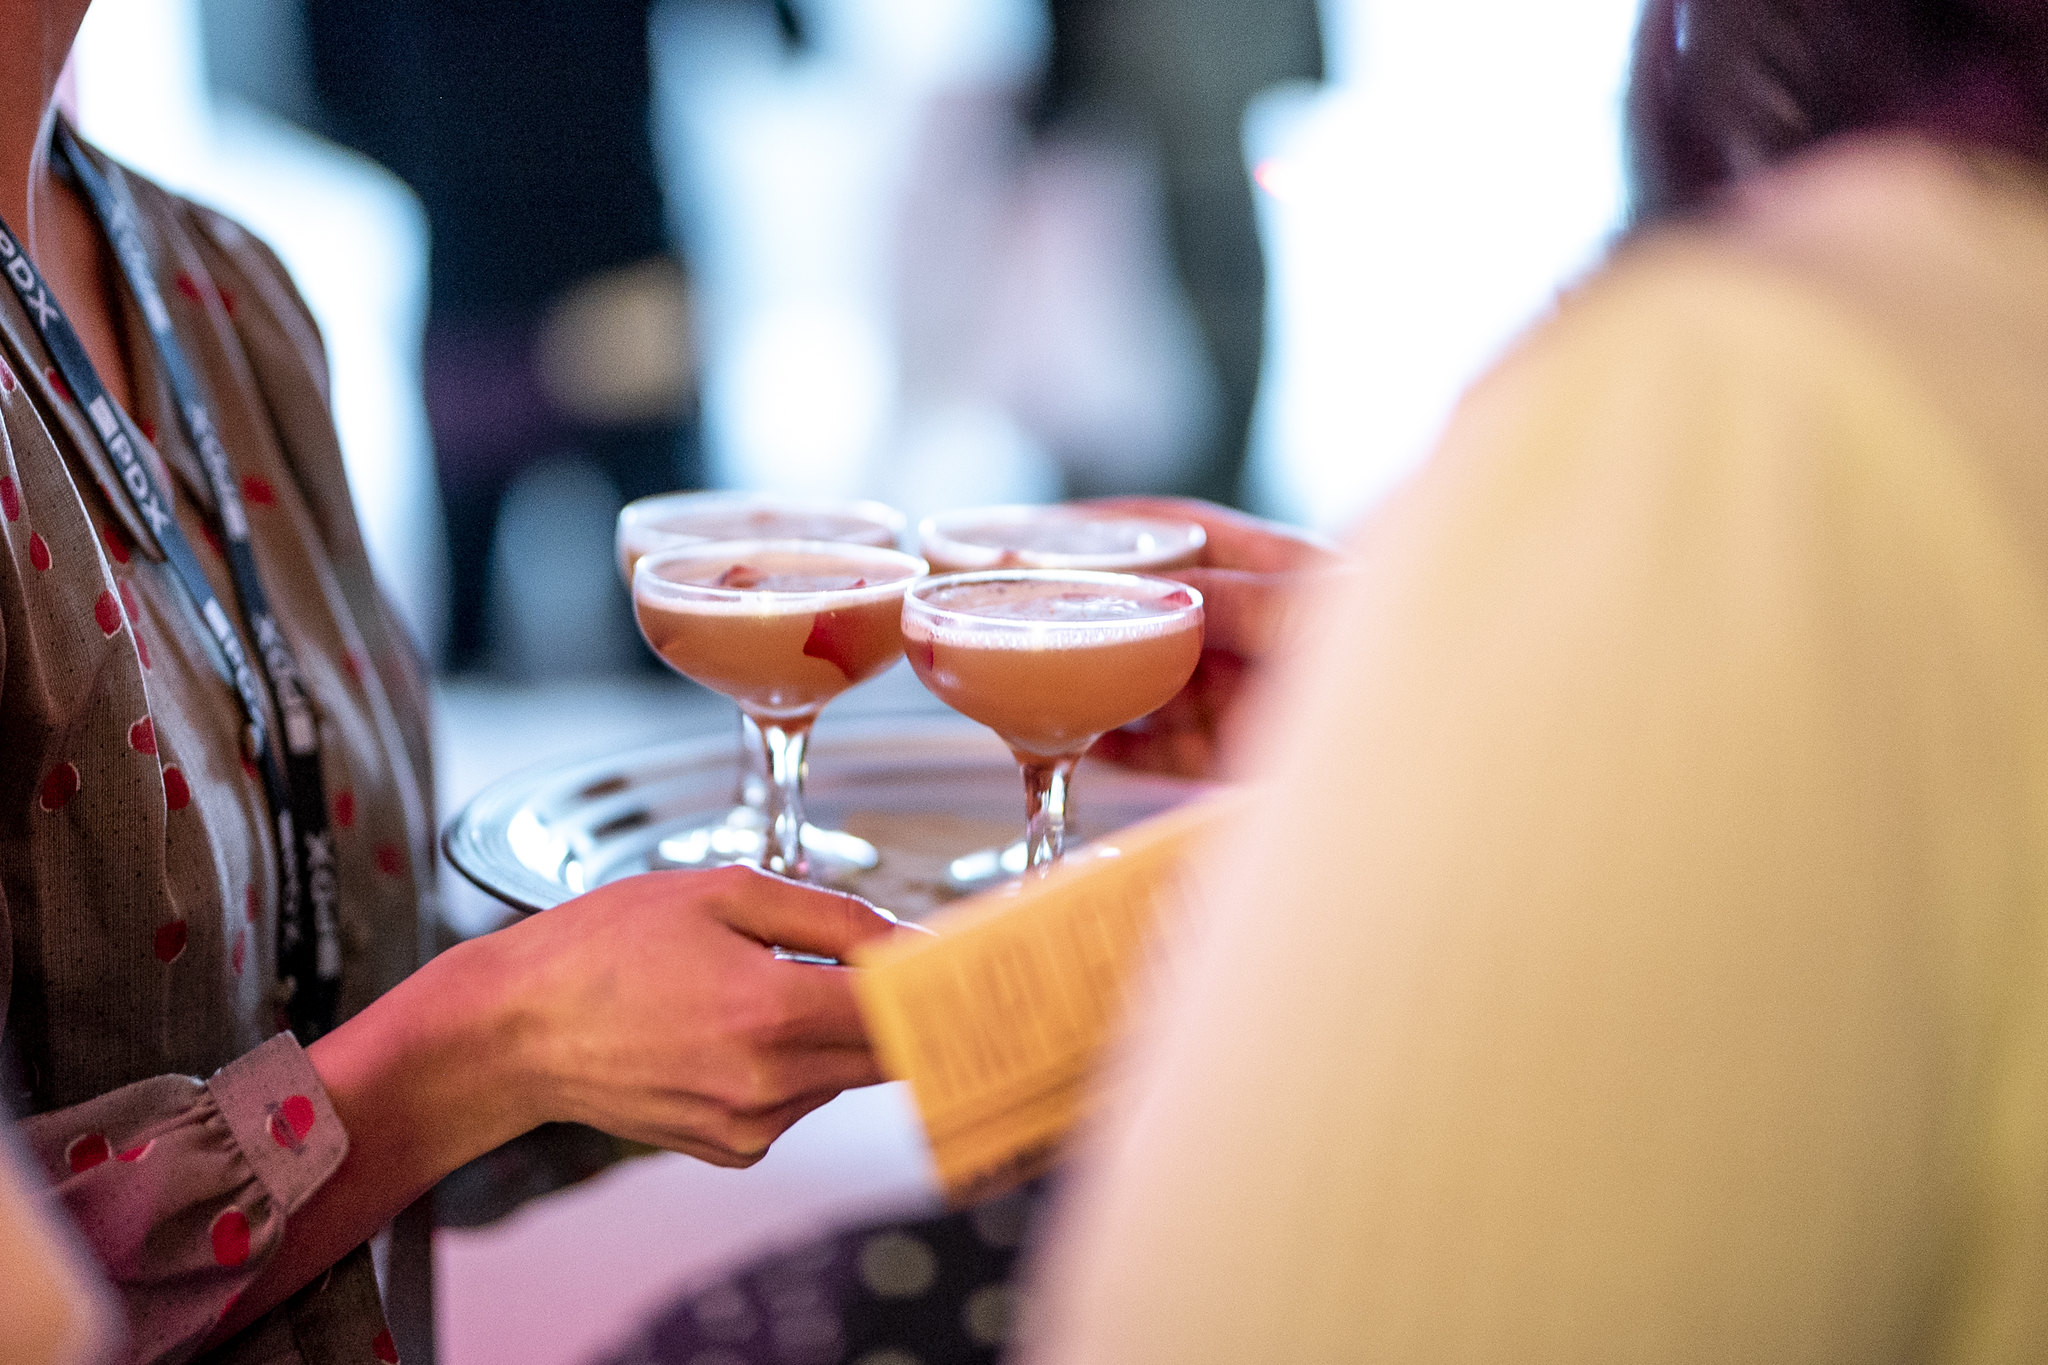 Drinks by Mixologist Emily Mistell of Hey Love, paired with Visual Artist Alyson Provax and Sound Artist Marcus Fisher